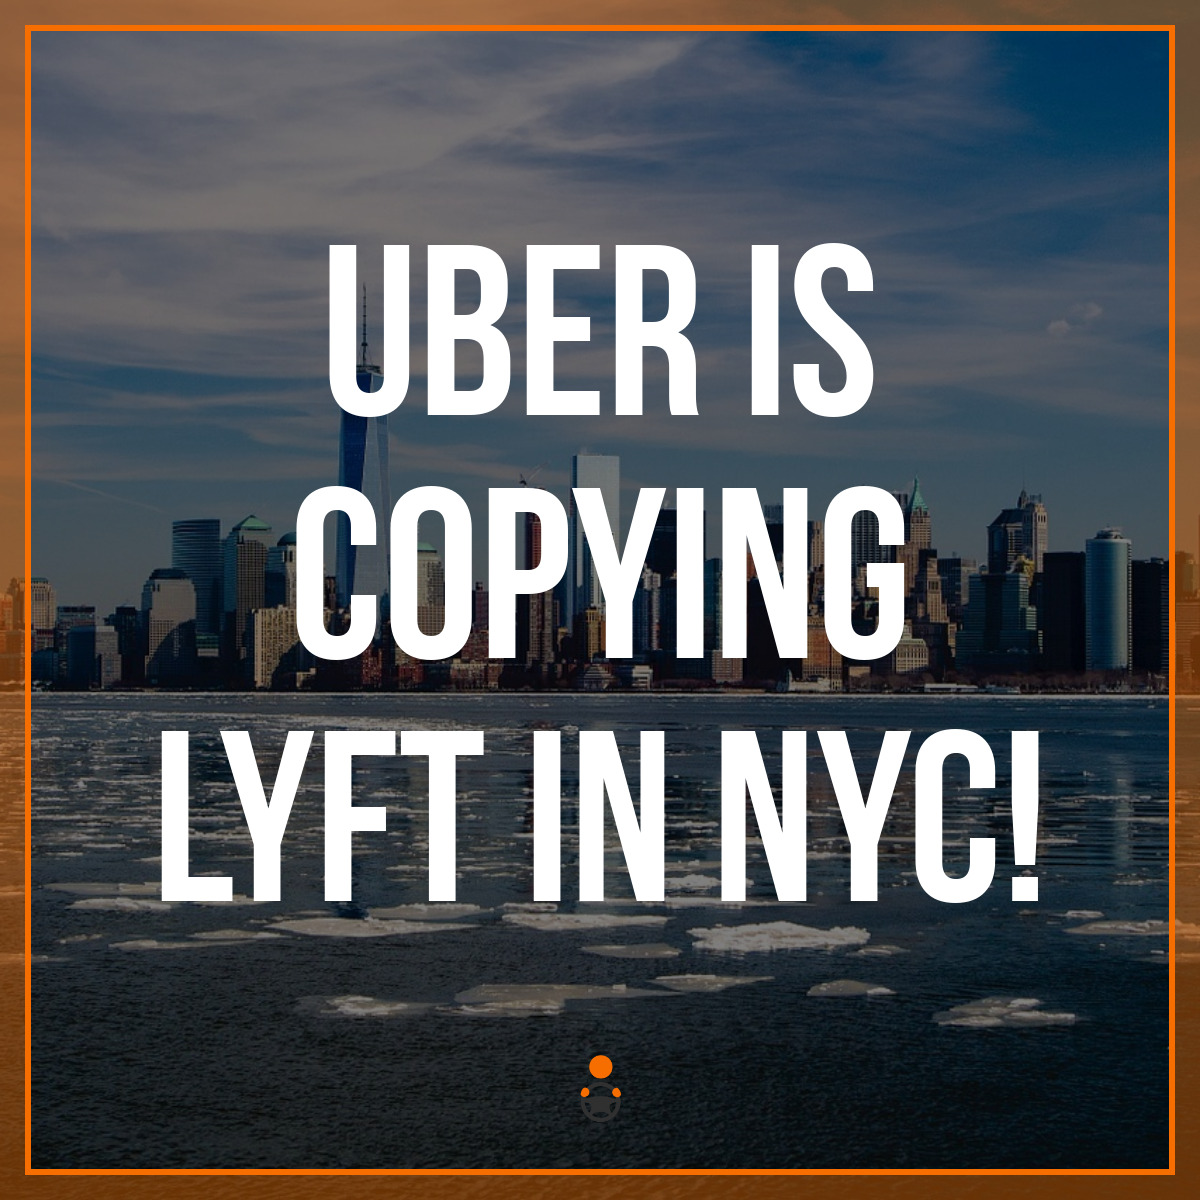 Uber is Copying Lyft in NYC!